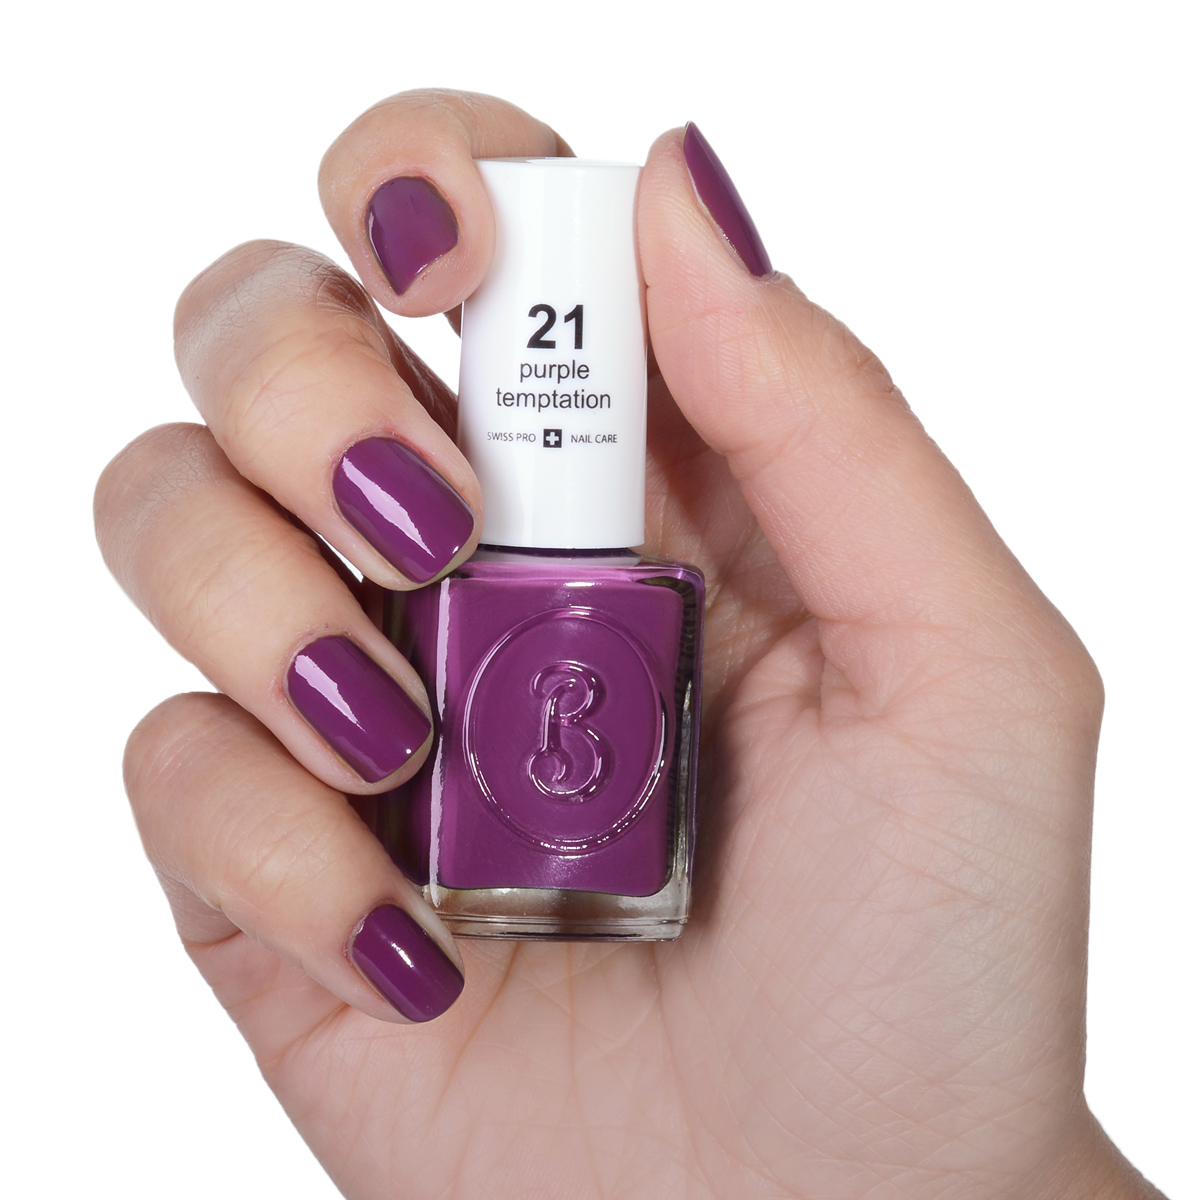 Berenice Oxygen Nail Polish / 21 purple temptation